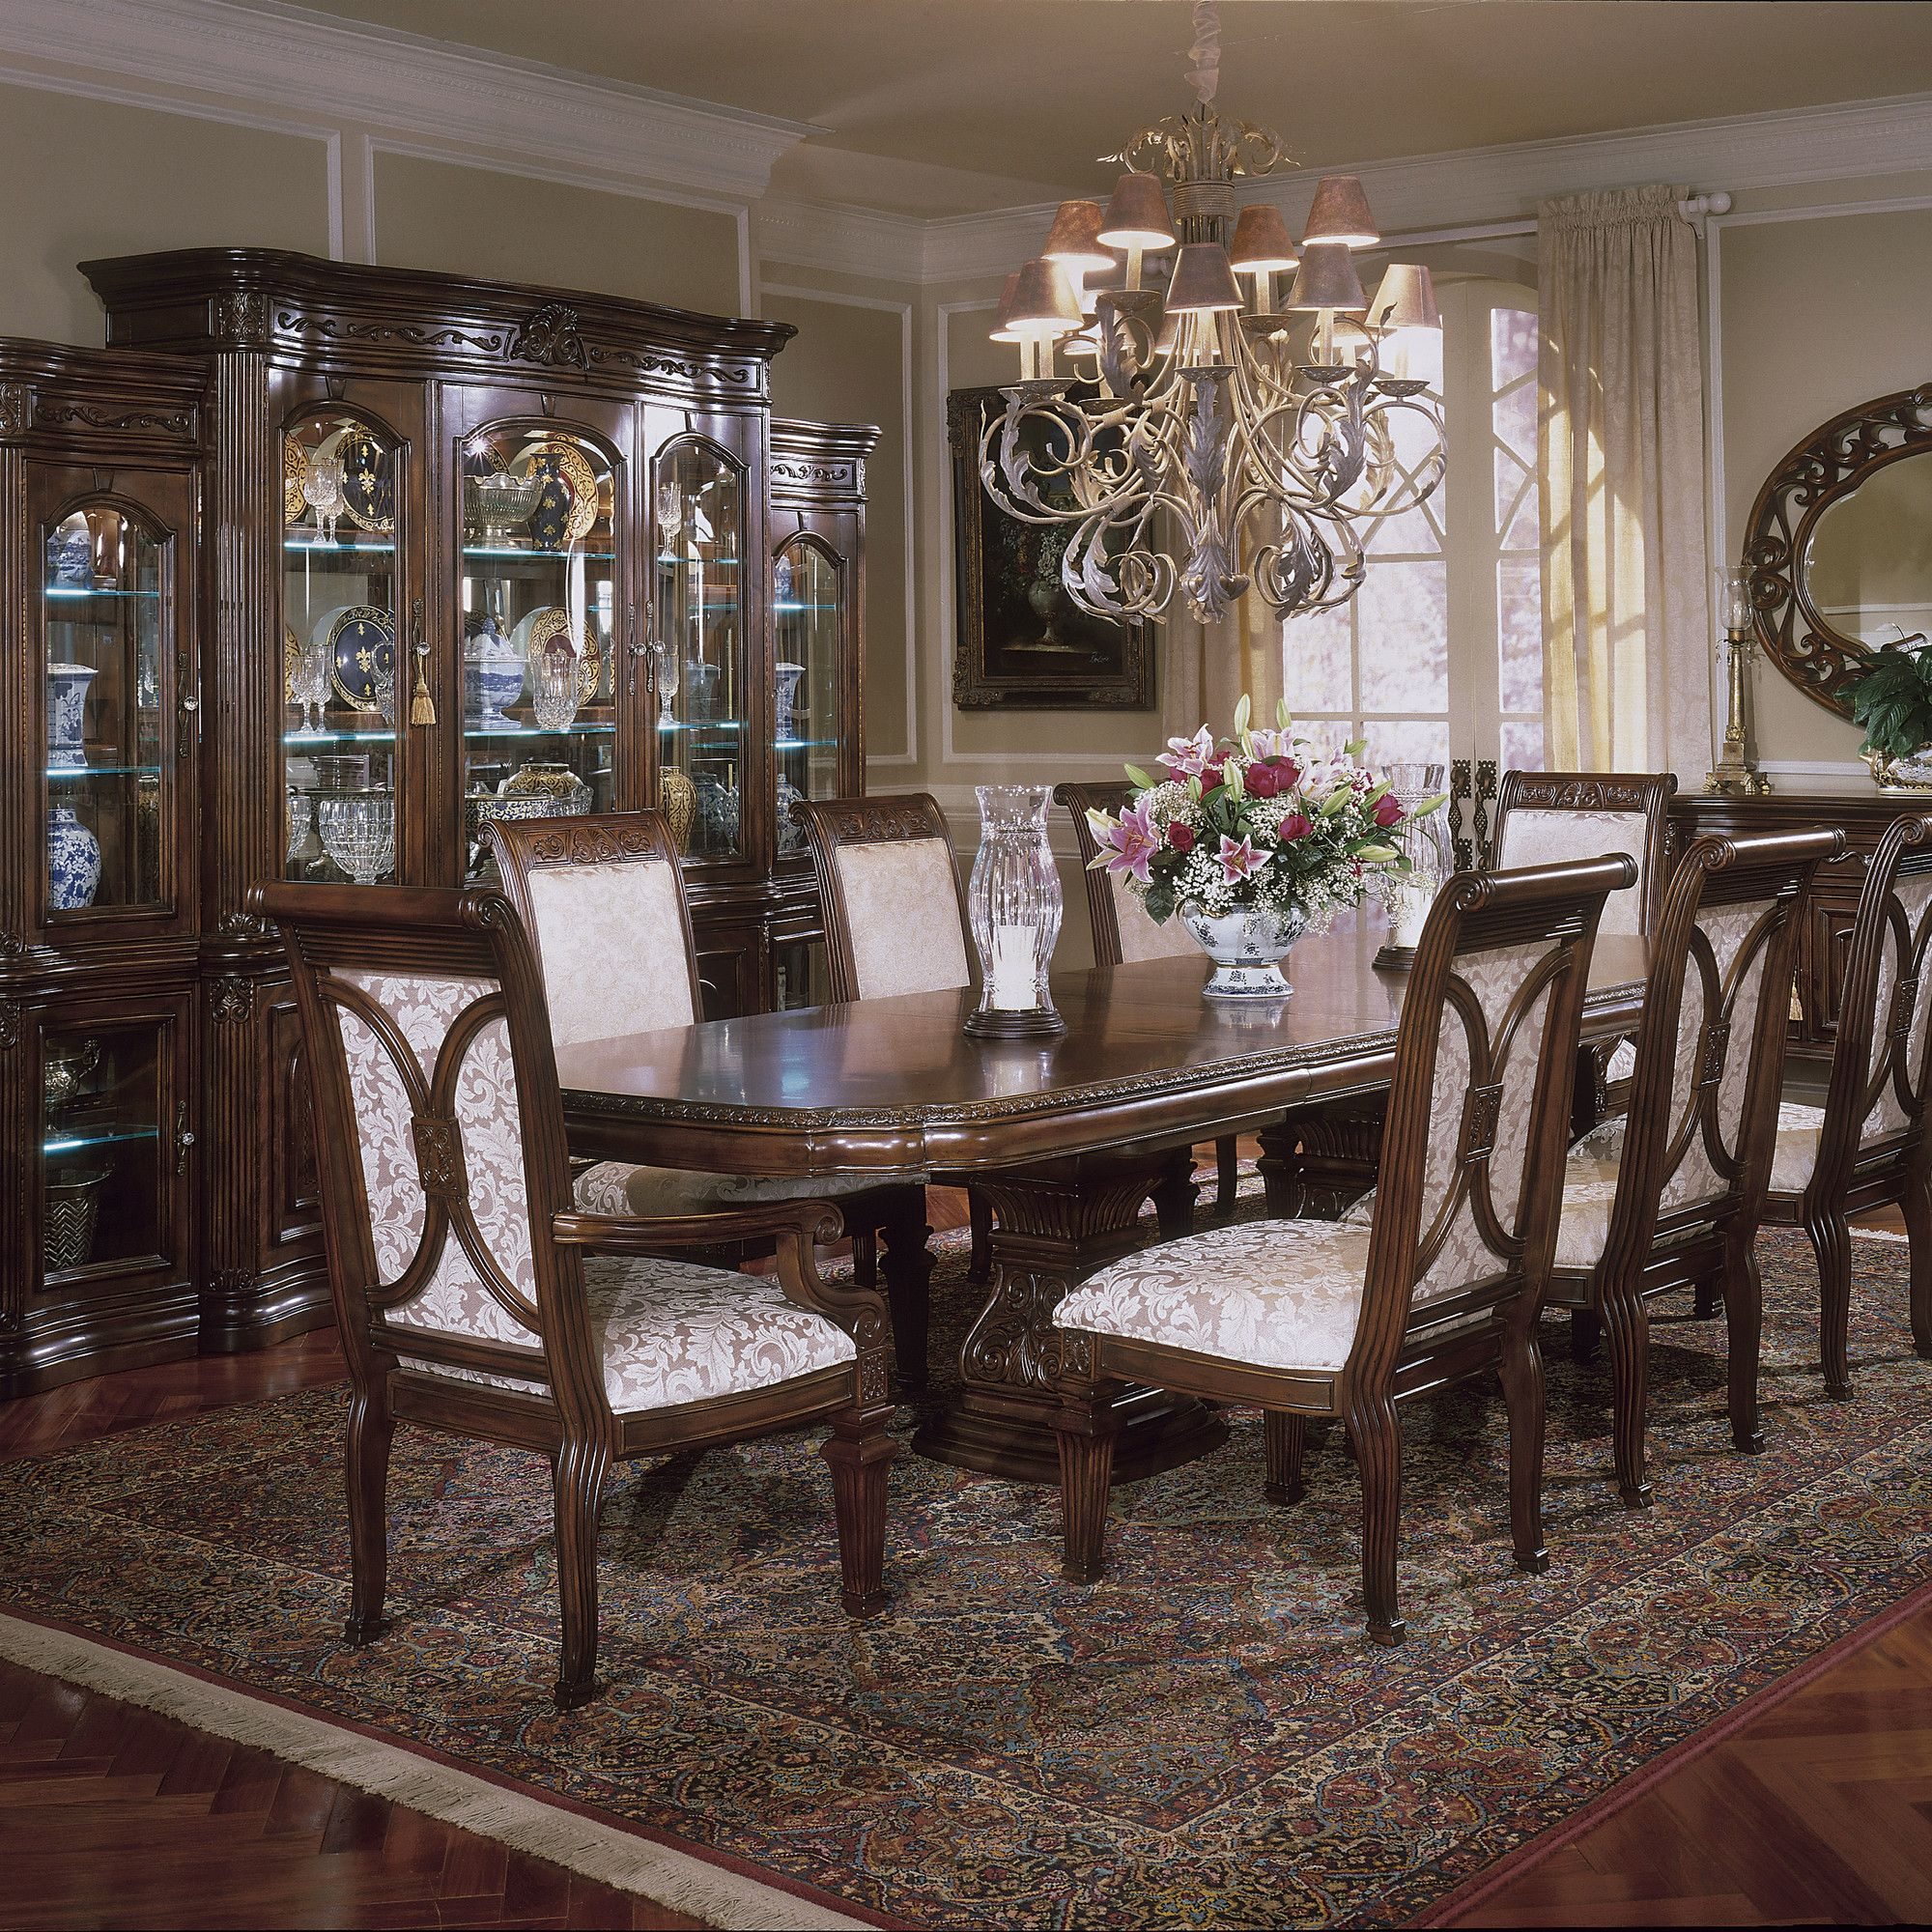 Villagio Dining Room Set With Rectangular Table, Is Manufactured By AICO / Michael  Amini.